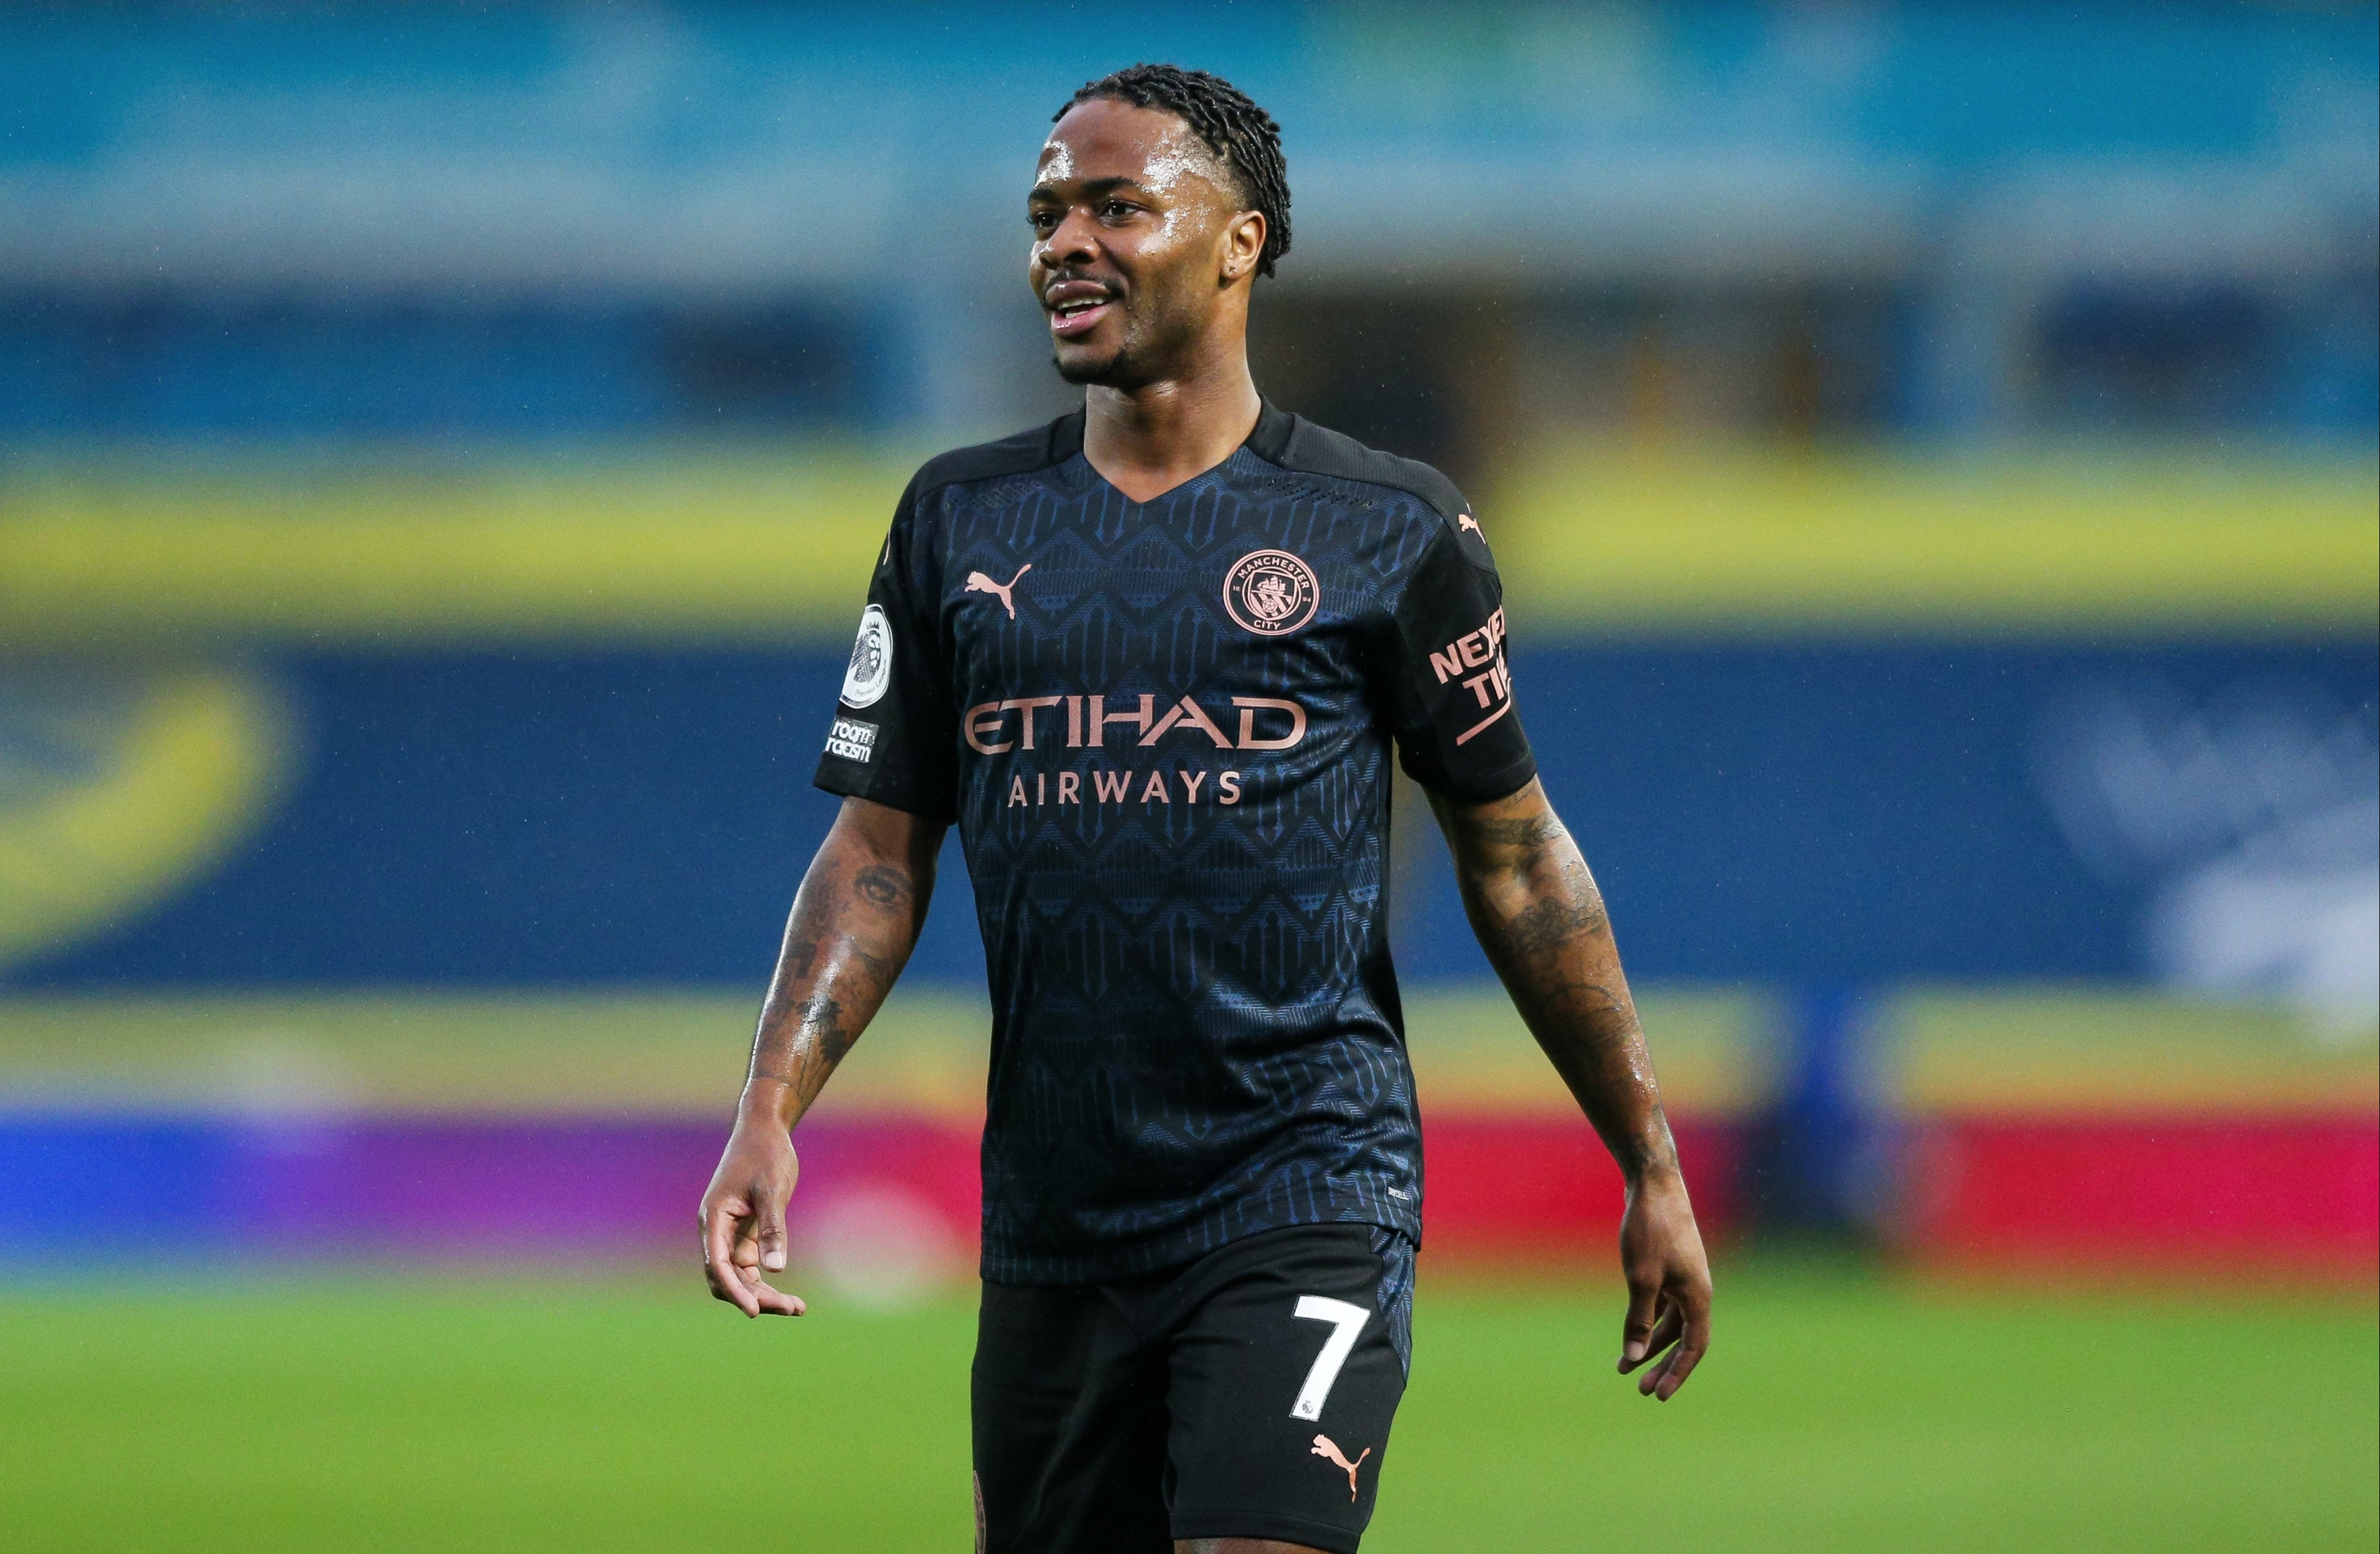 Sterling warns Arsenal stars 'run or you won't play' as Man City star hails hard-line Arteta after playing under him